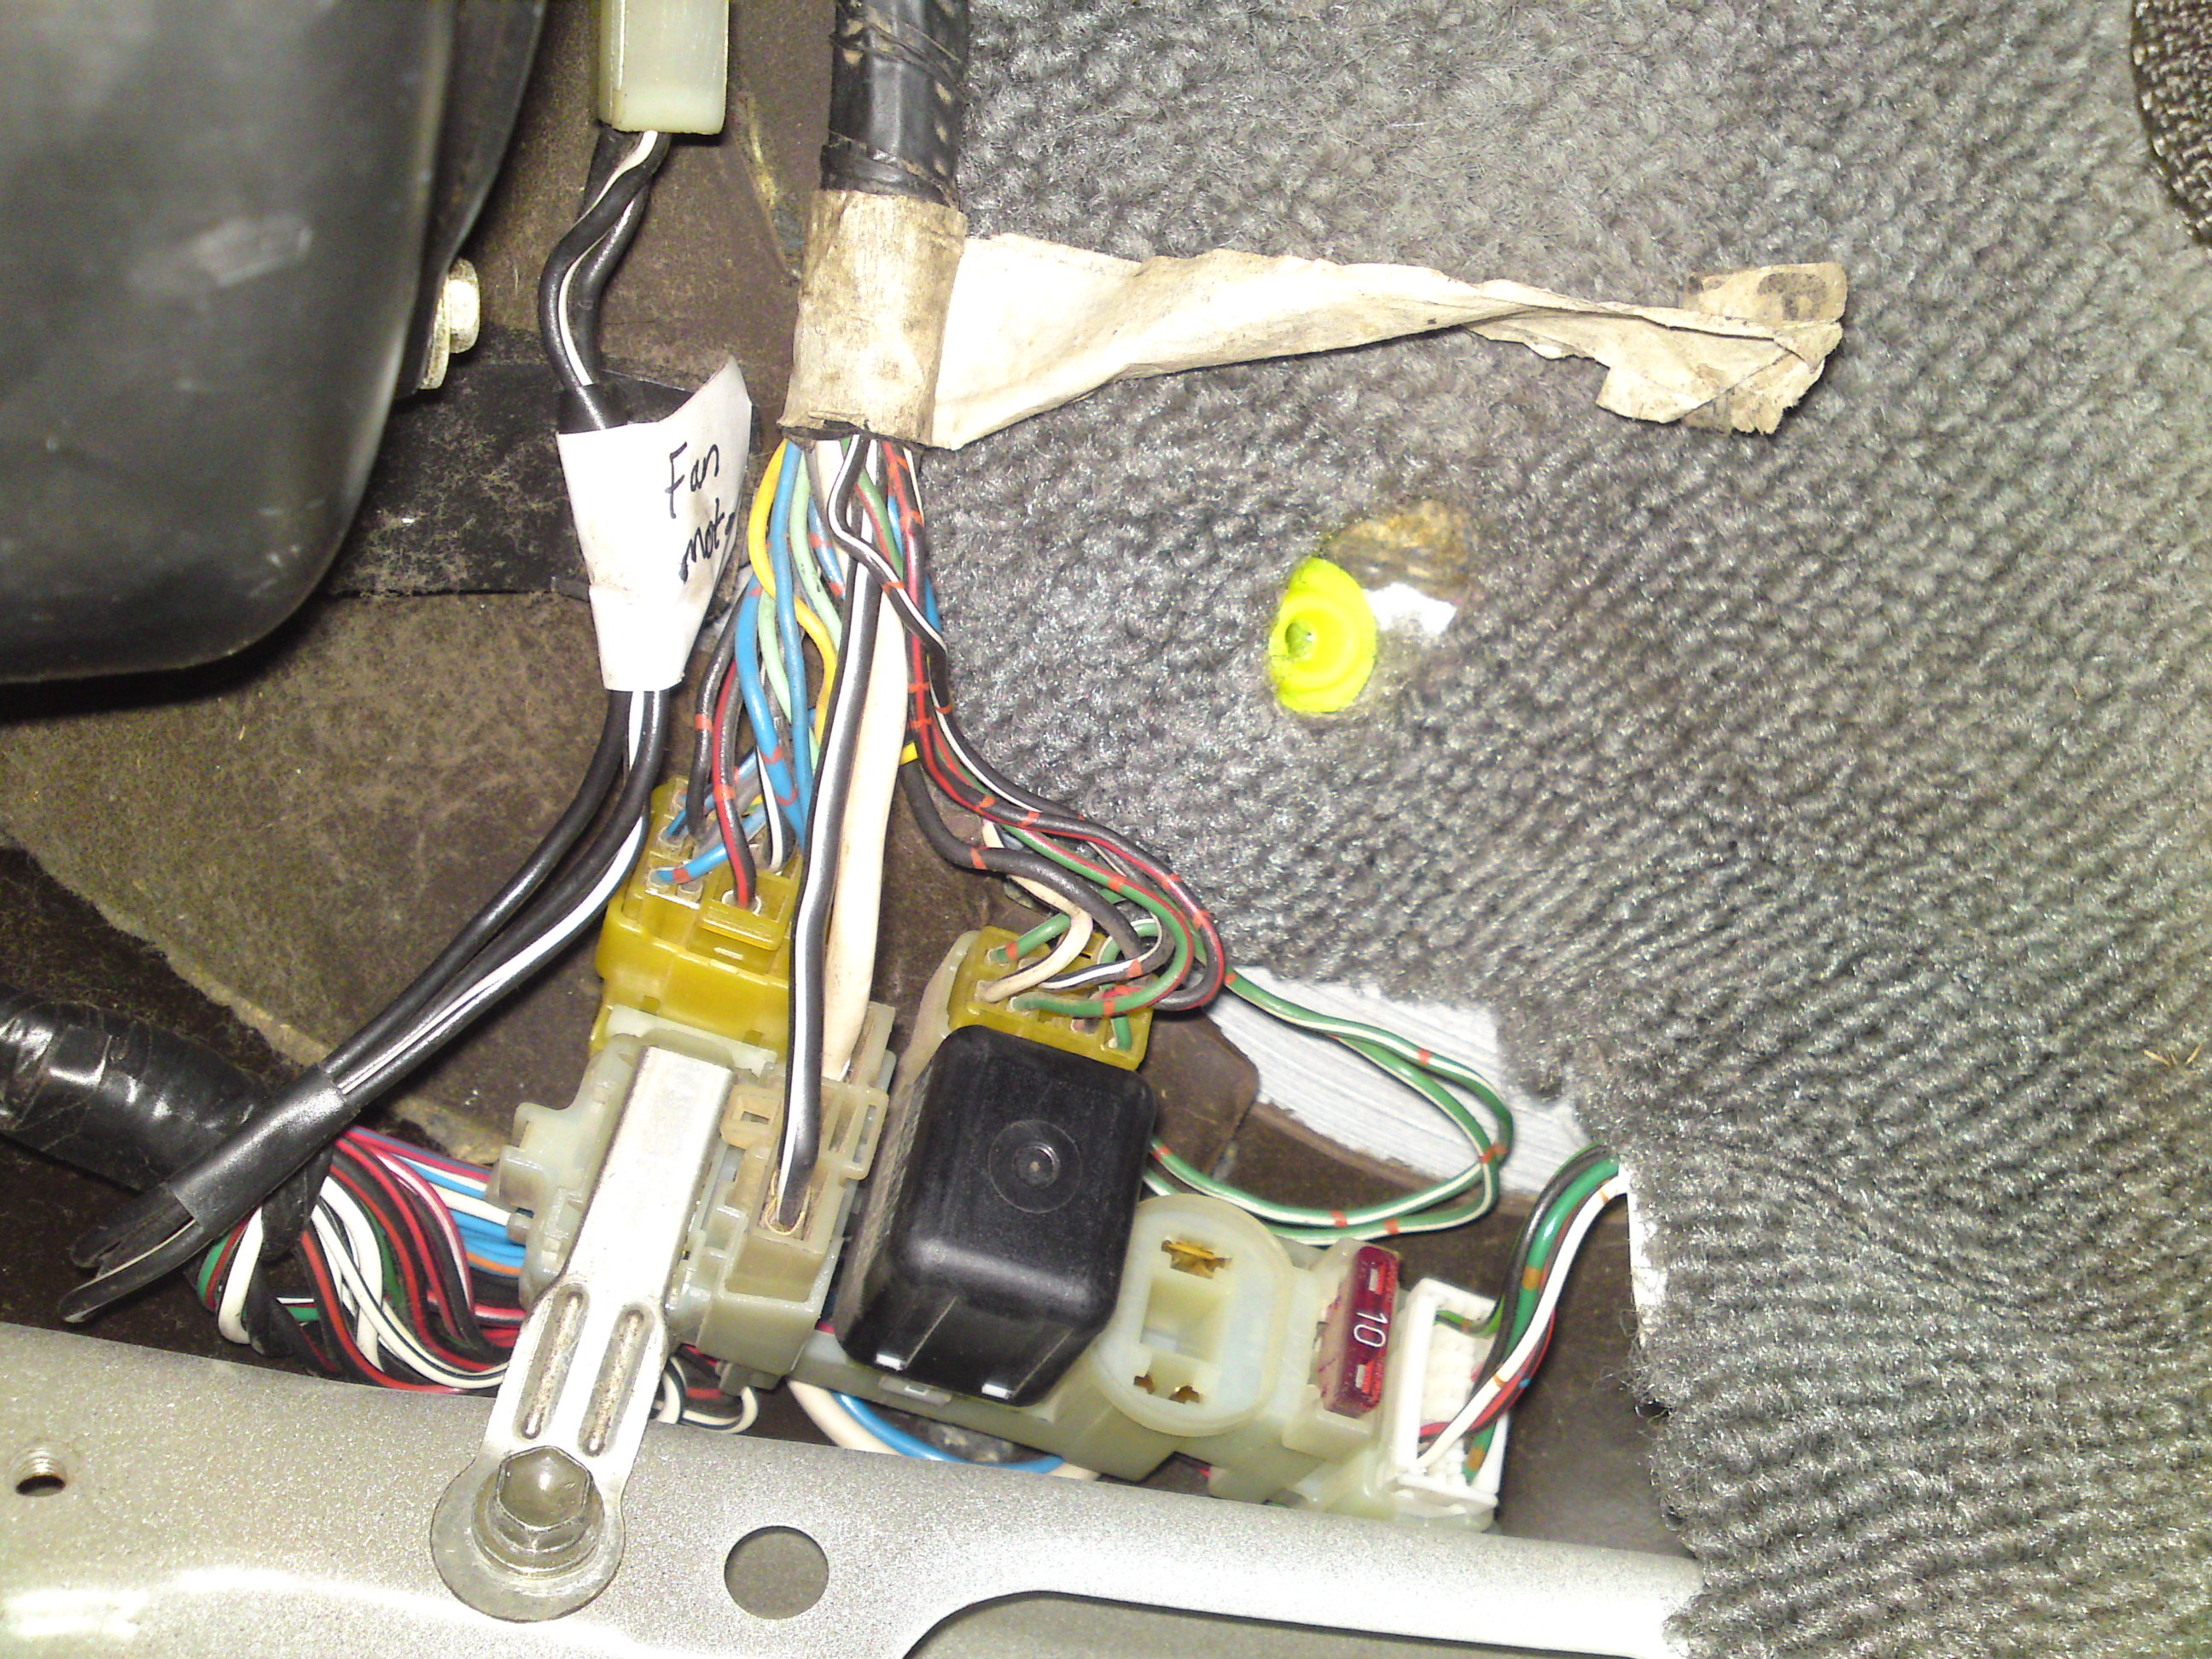 Alot Of 4age Wiring Questions - Car Electrical - rollaclub.com